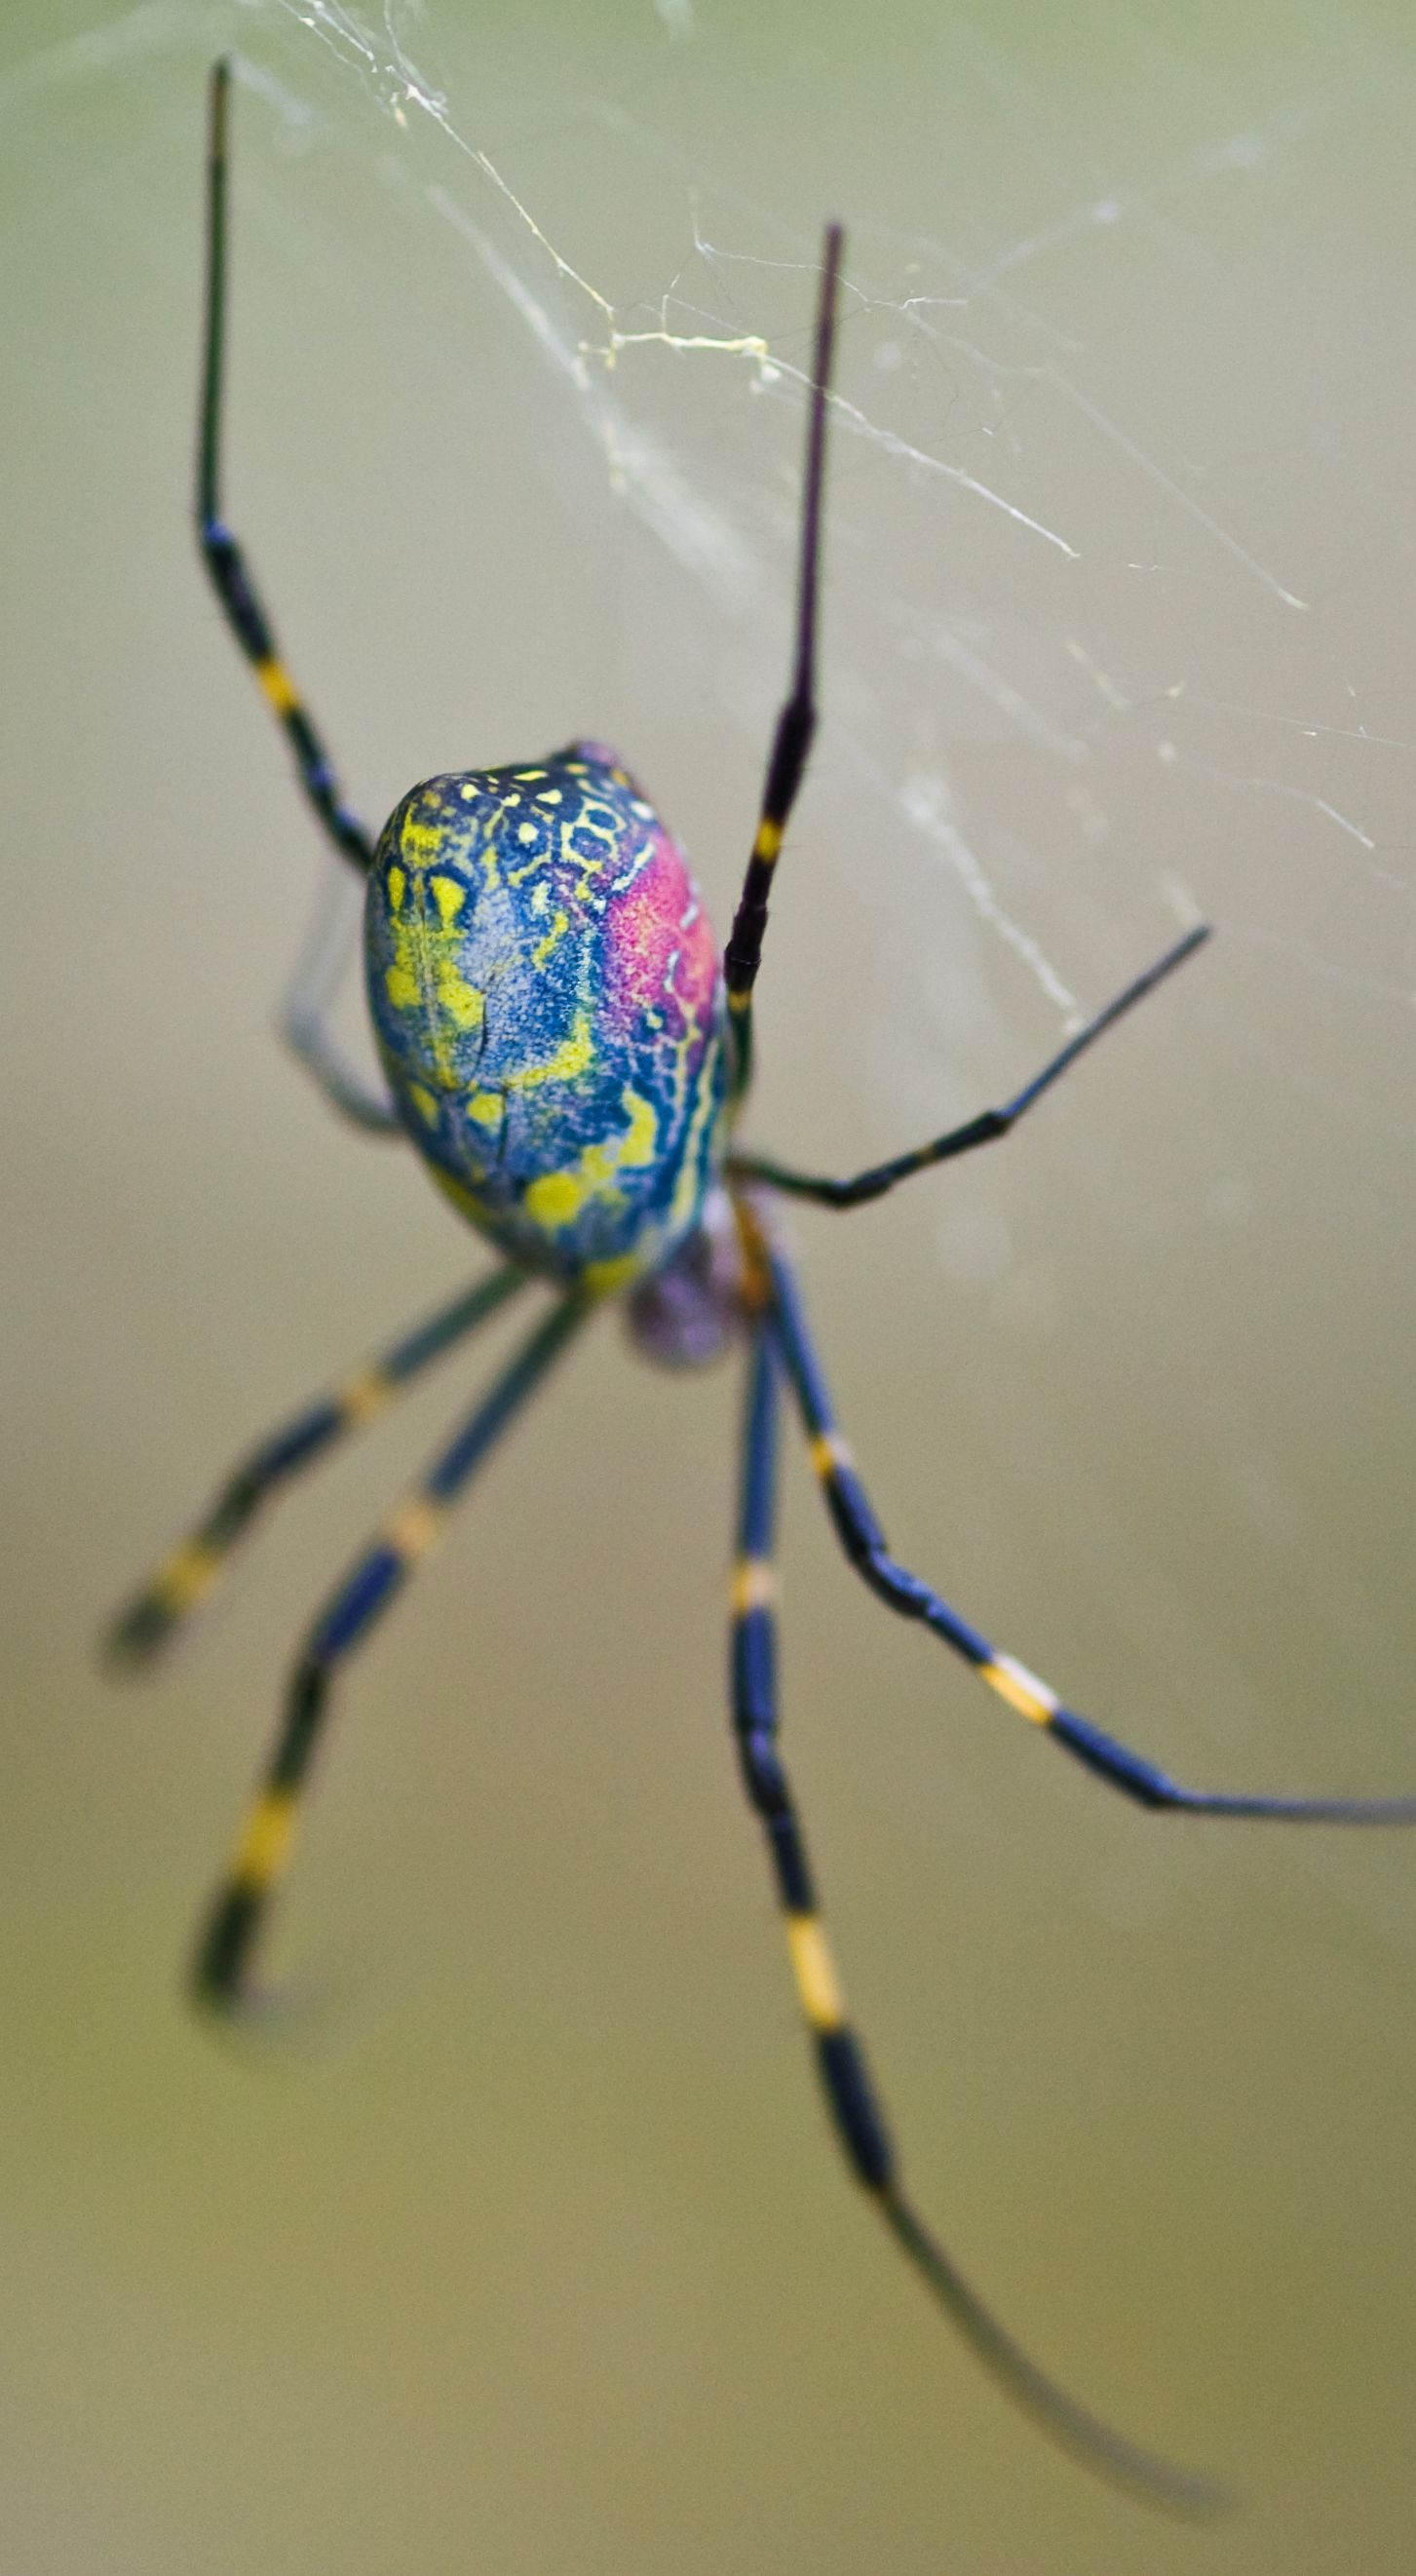 Pretty Spiders- The seer- Mediators, The Spider is very important ...